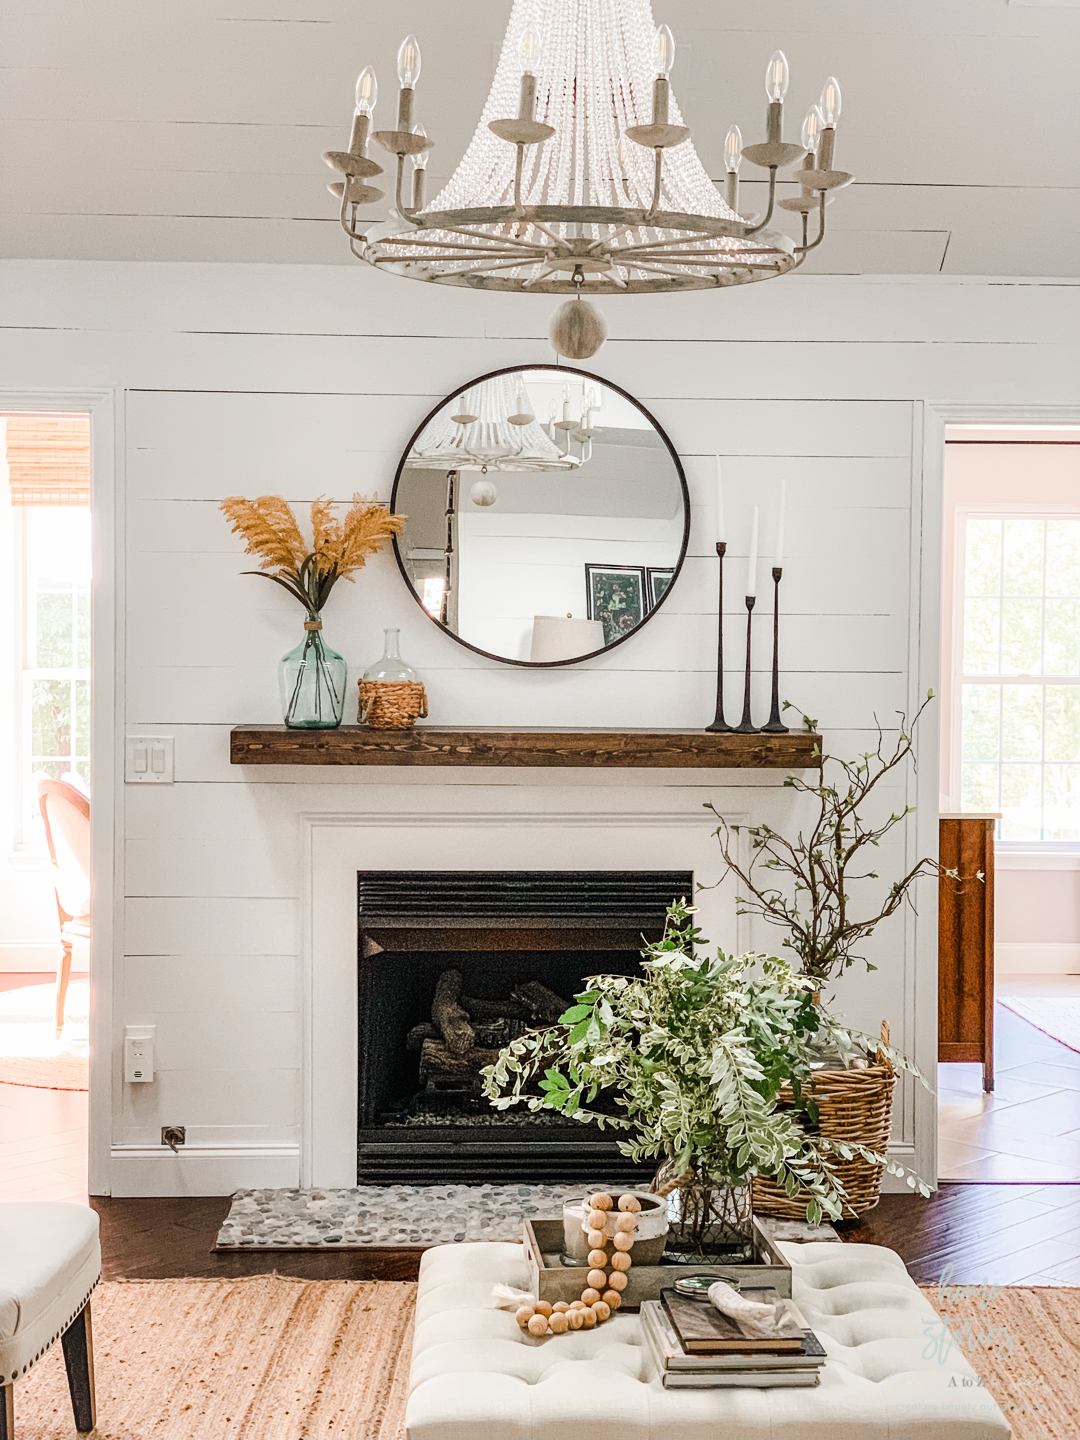 Fireplace Makeover How To Tile Over Existing Tile Tutorial